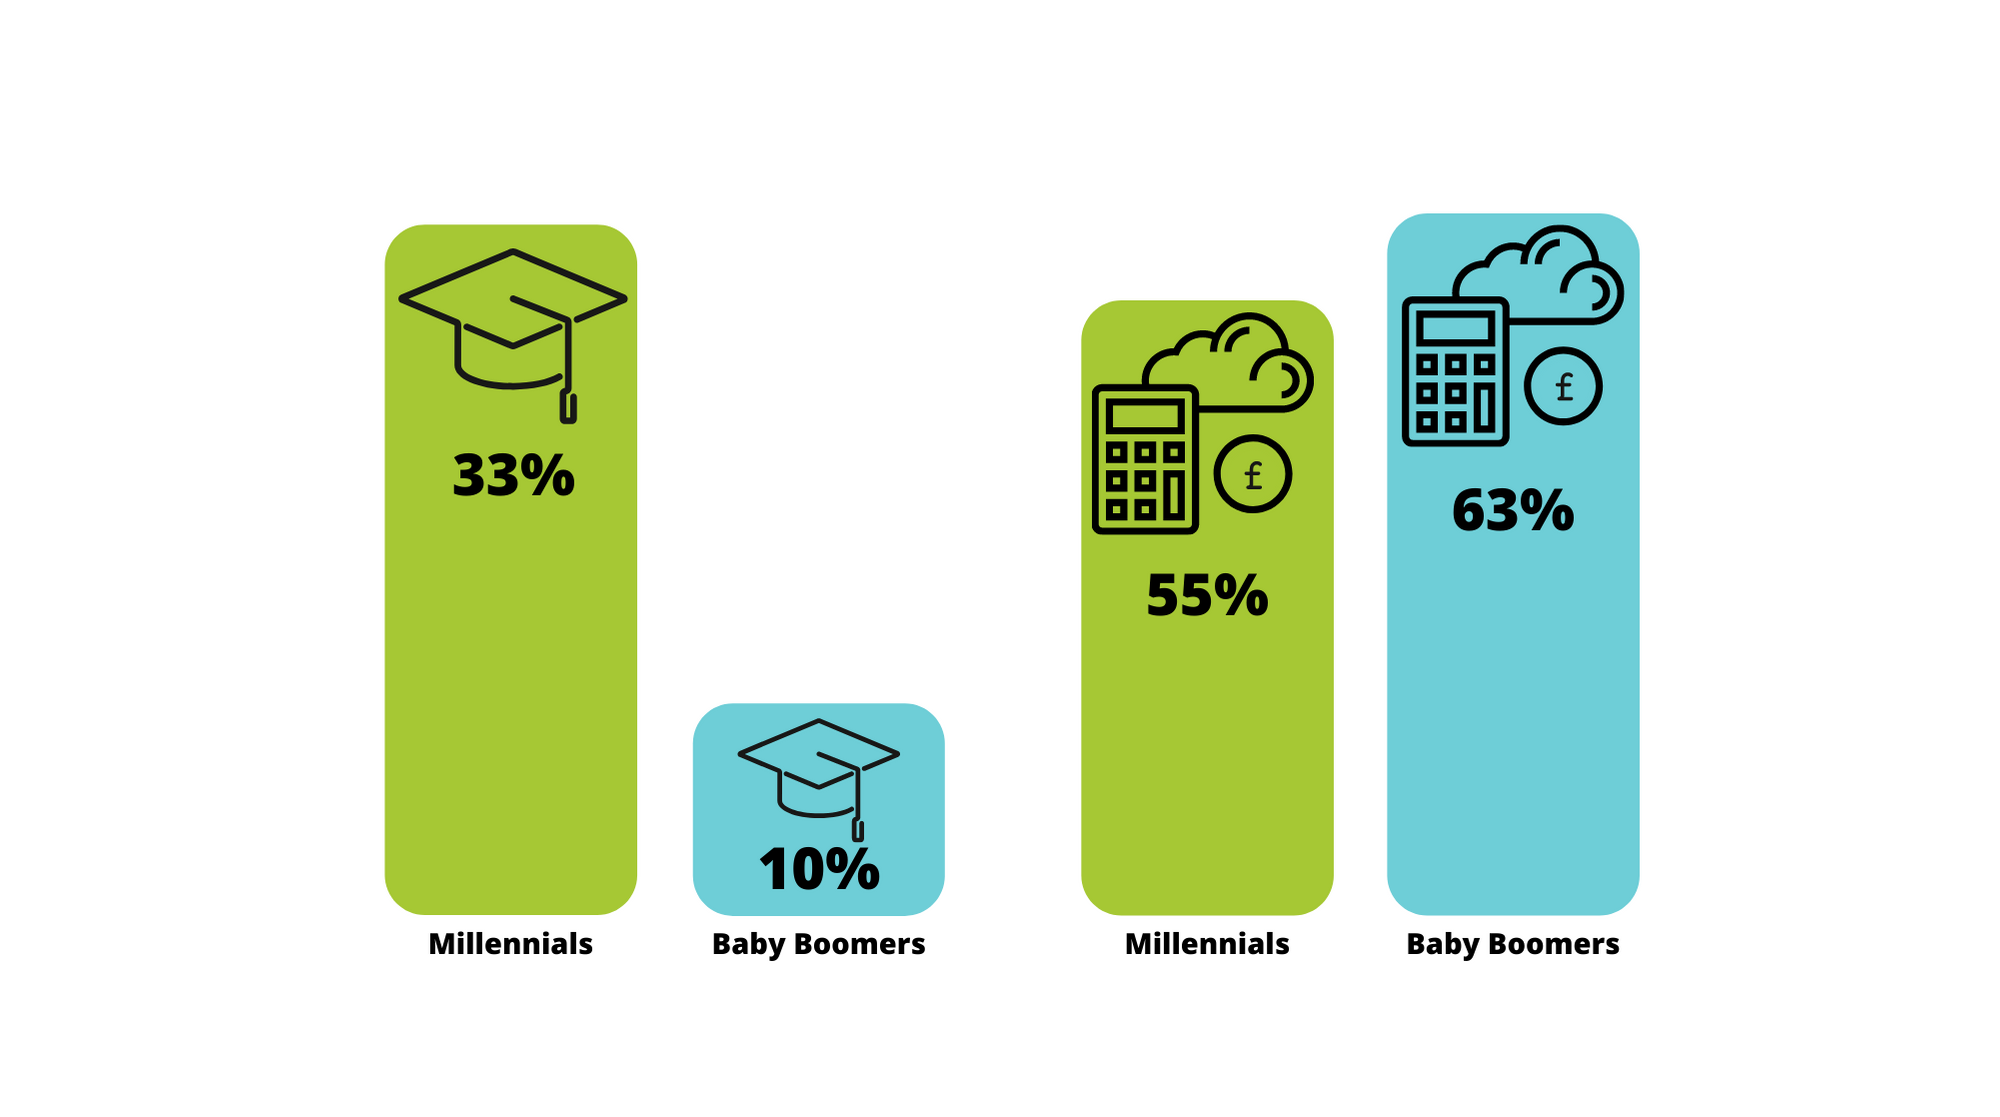 Survey accountants illustrates young millennials complete more degrees